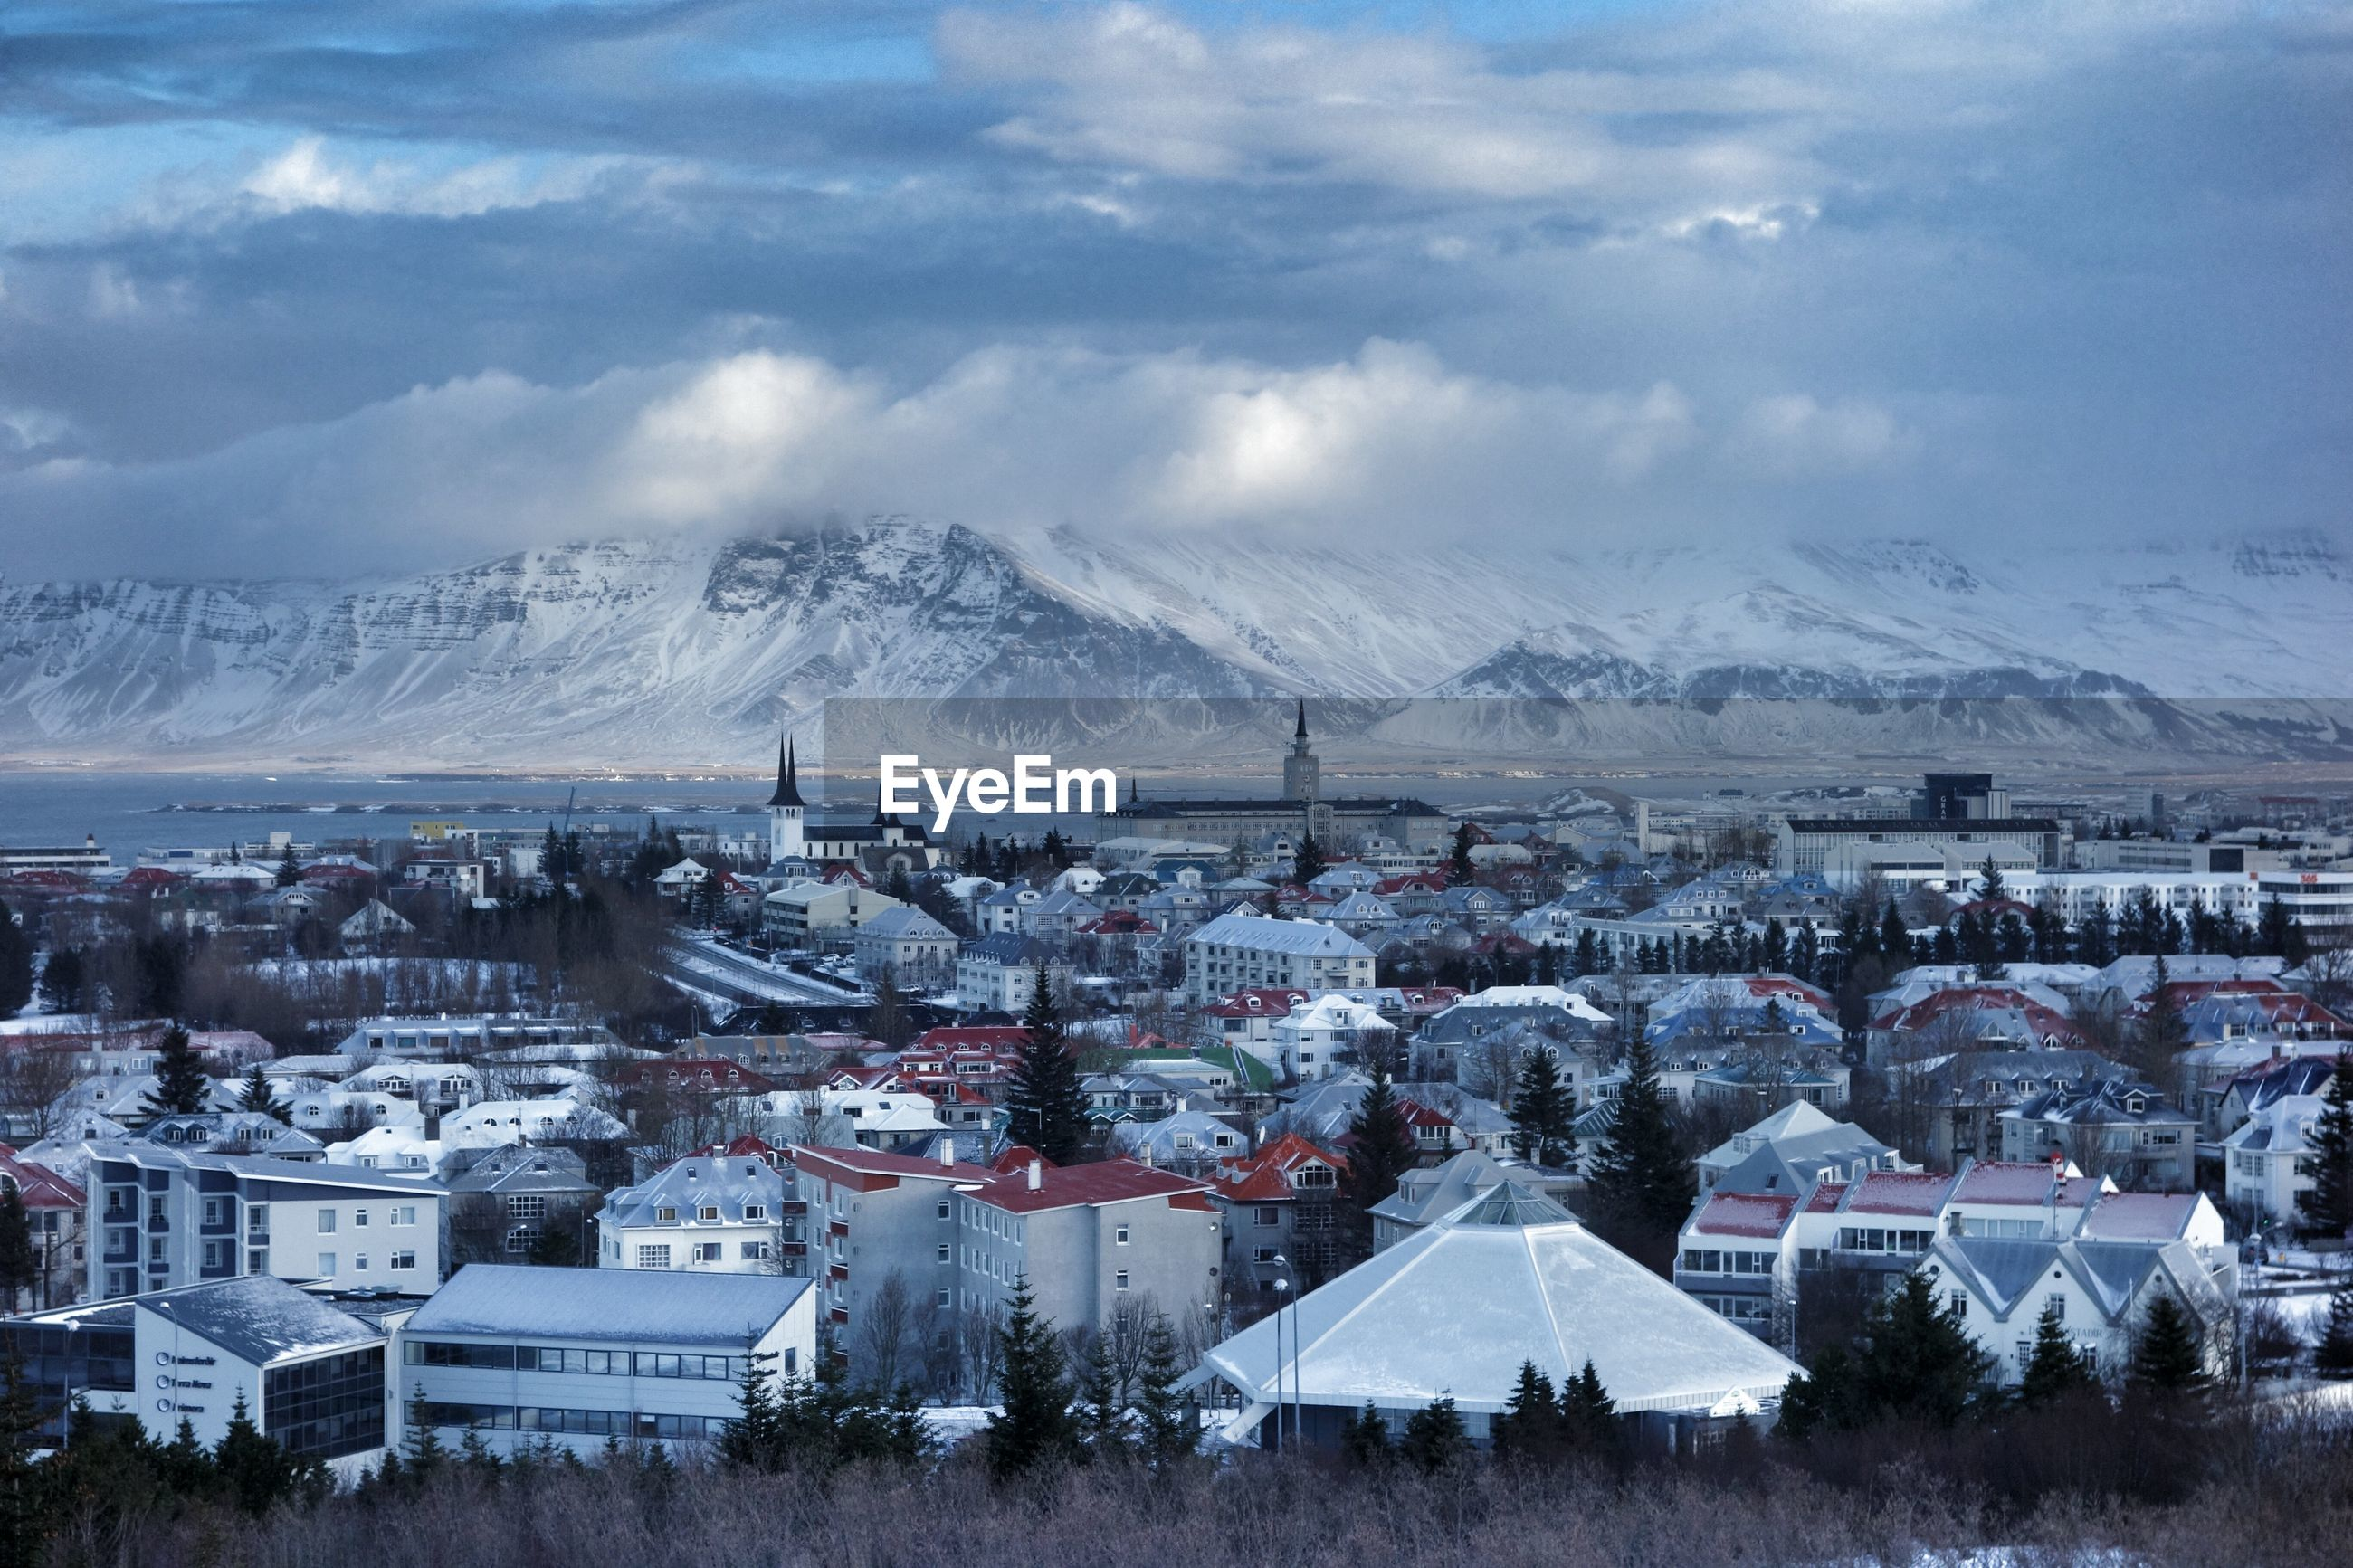 Buildings and snowcapped mountains against cloudy sky